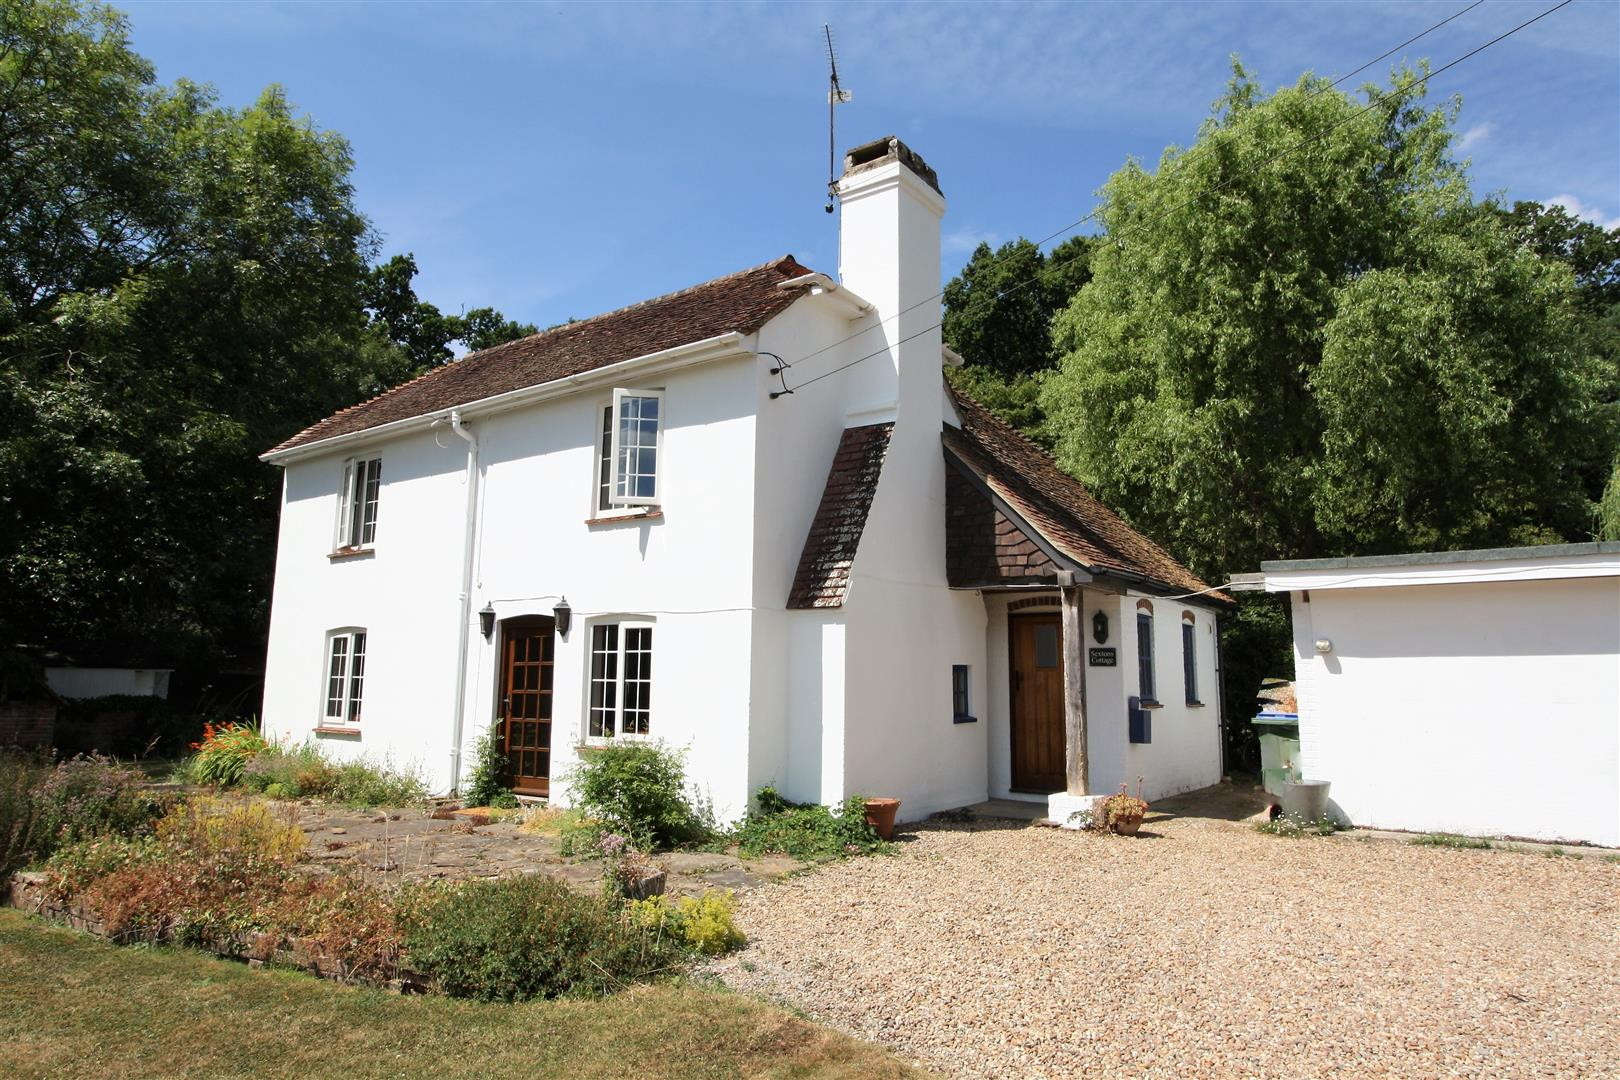 4 bedroom detached cottage for sale